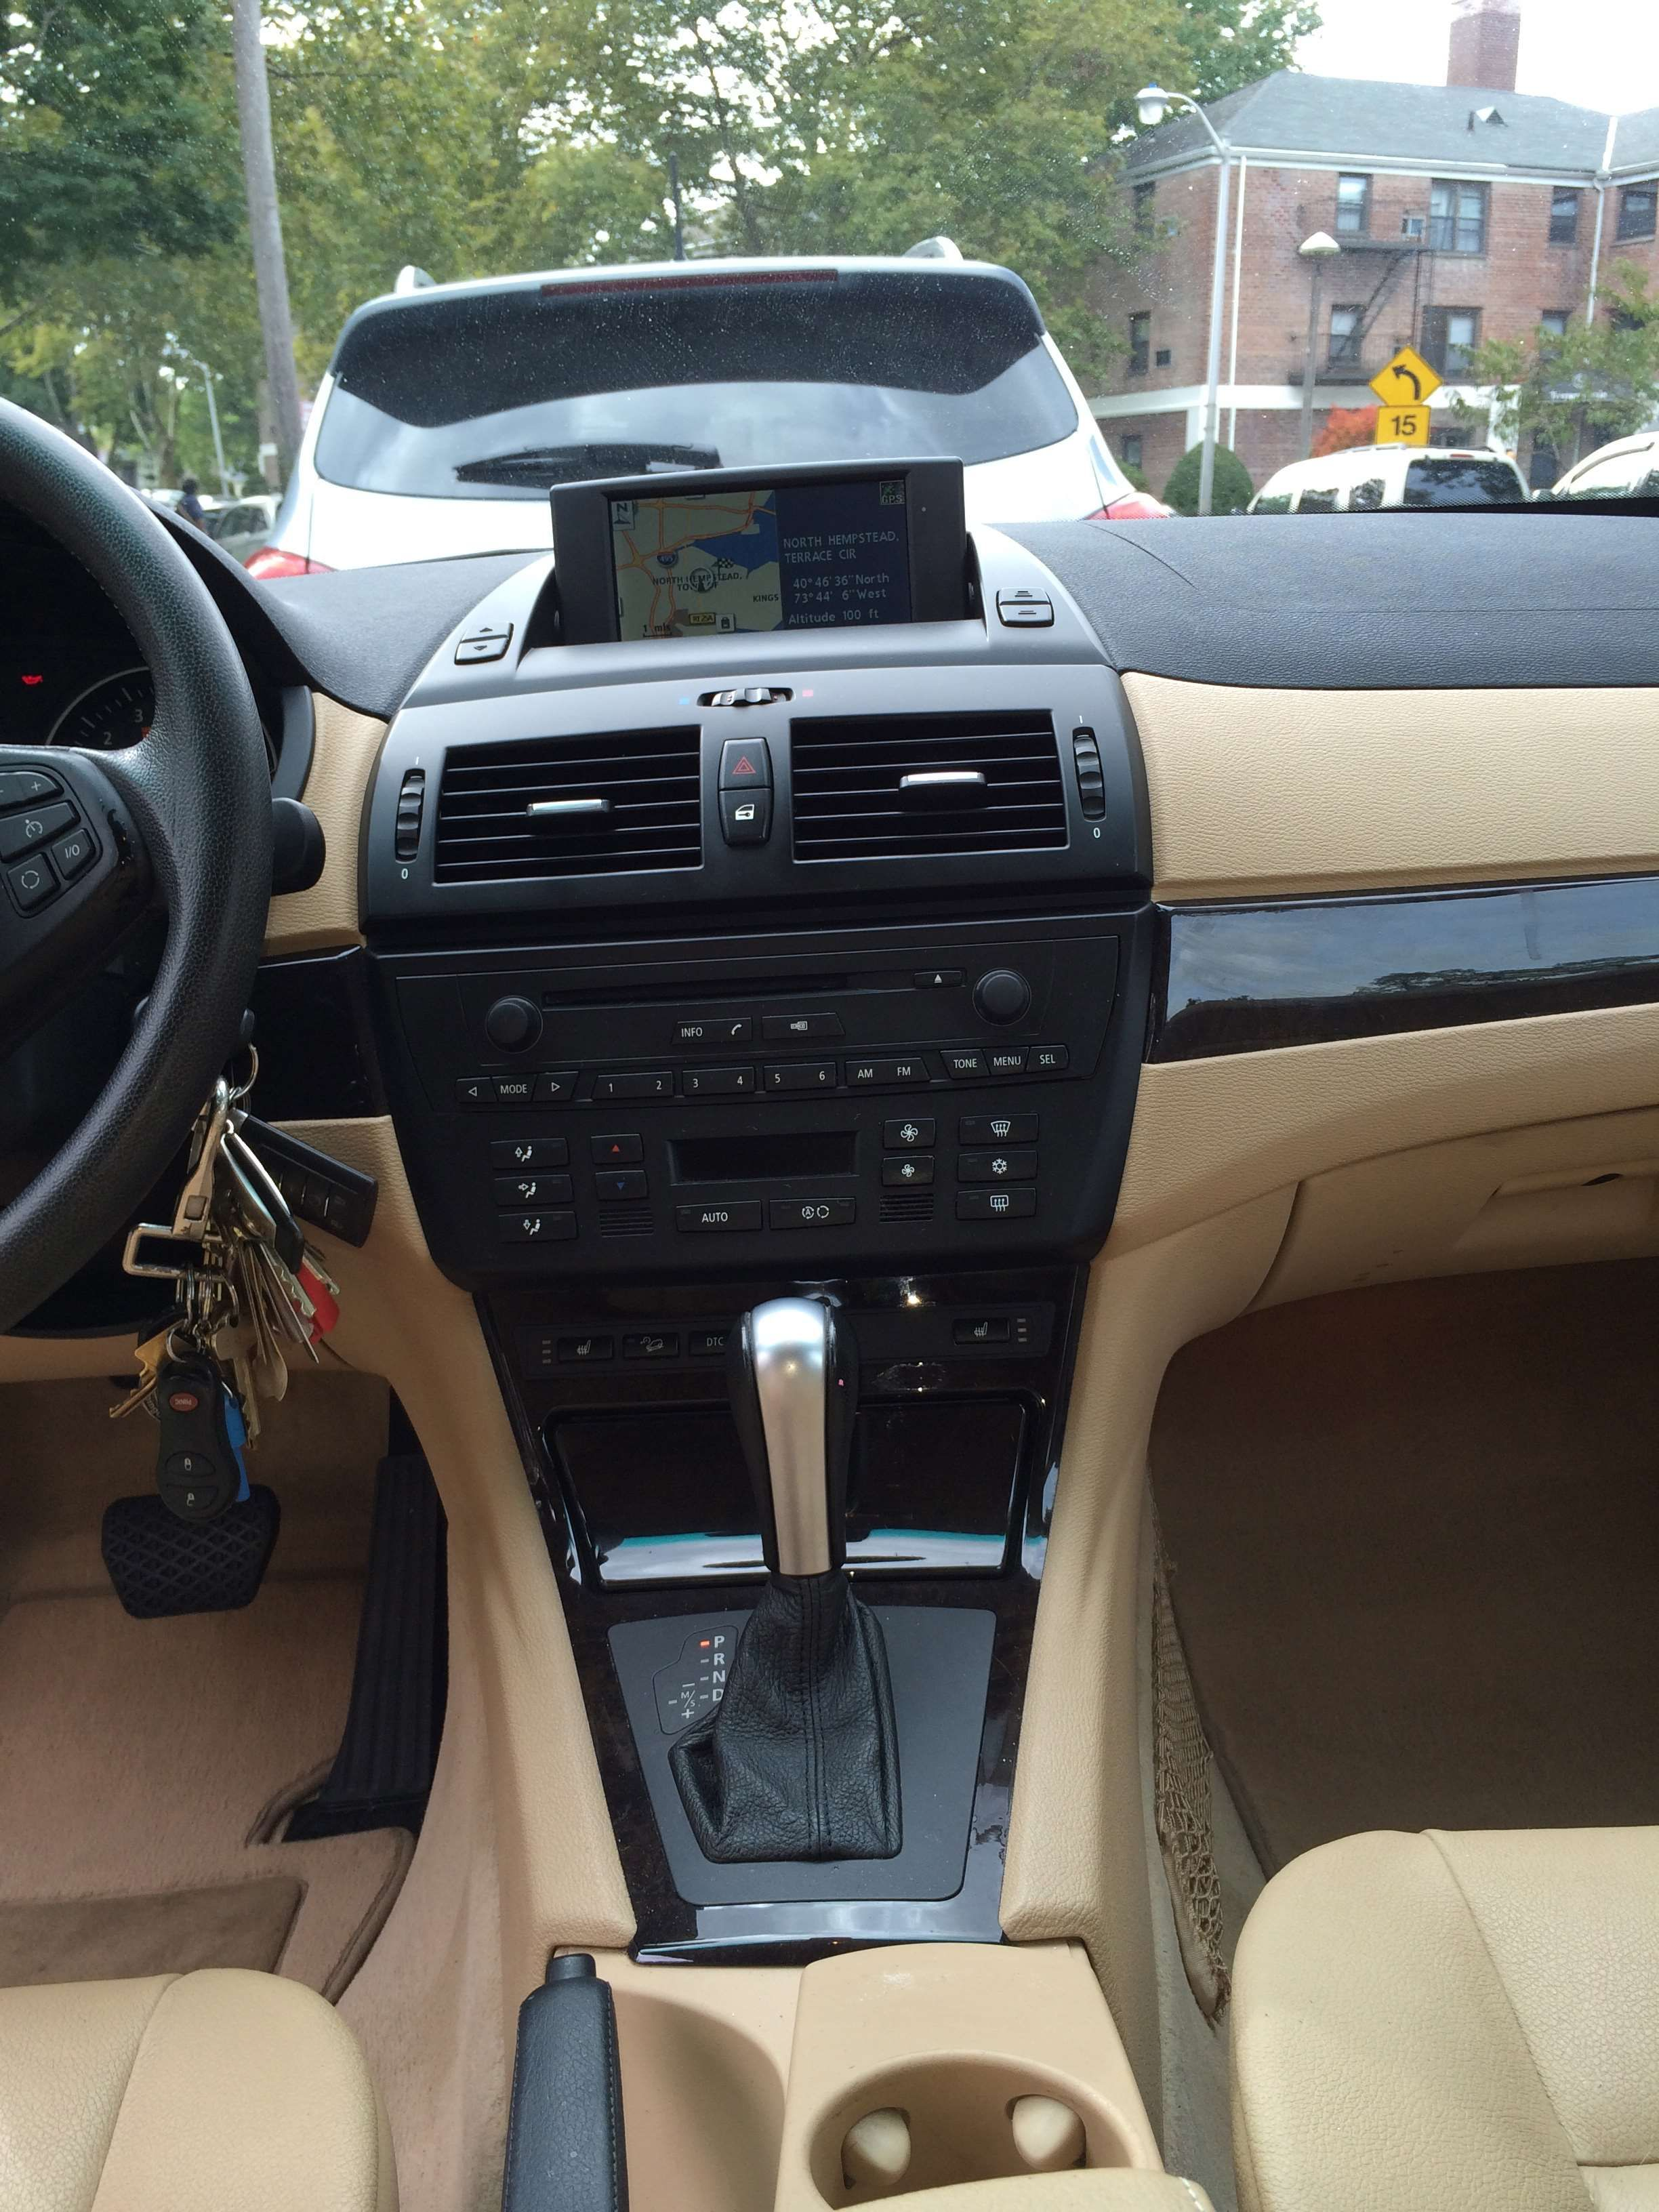 Make: BMW Model: X3 Year: 2007 Body Style: SUV Exterior Color: Black ...